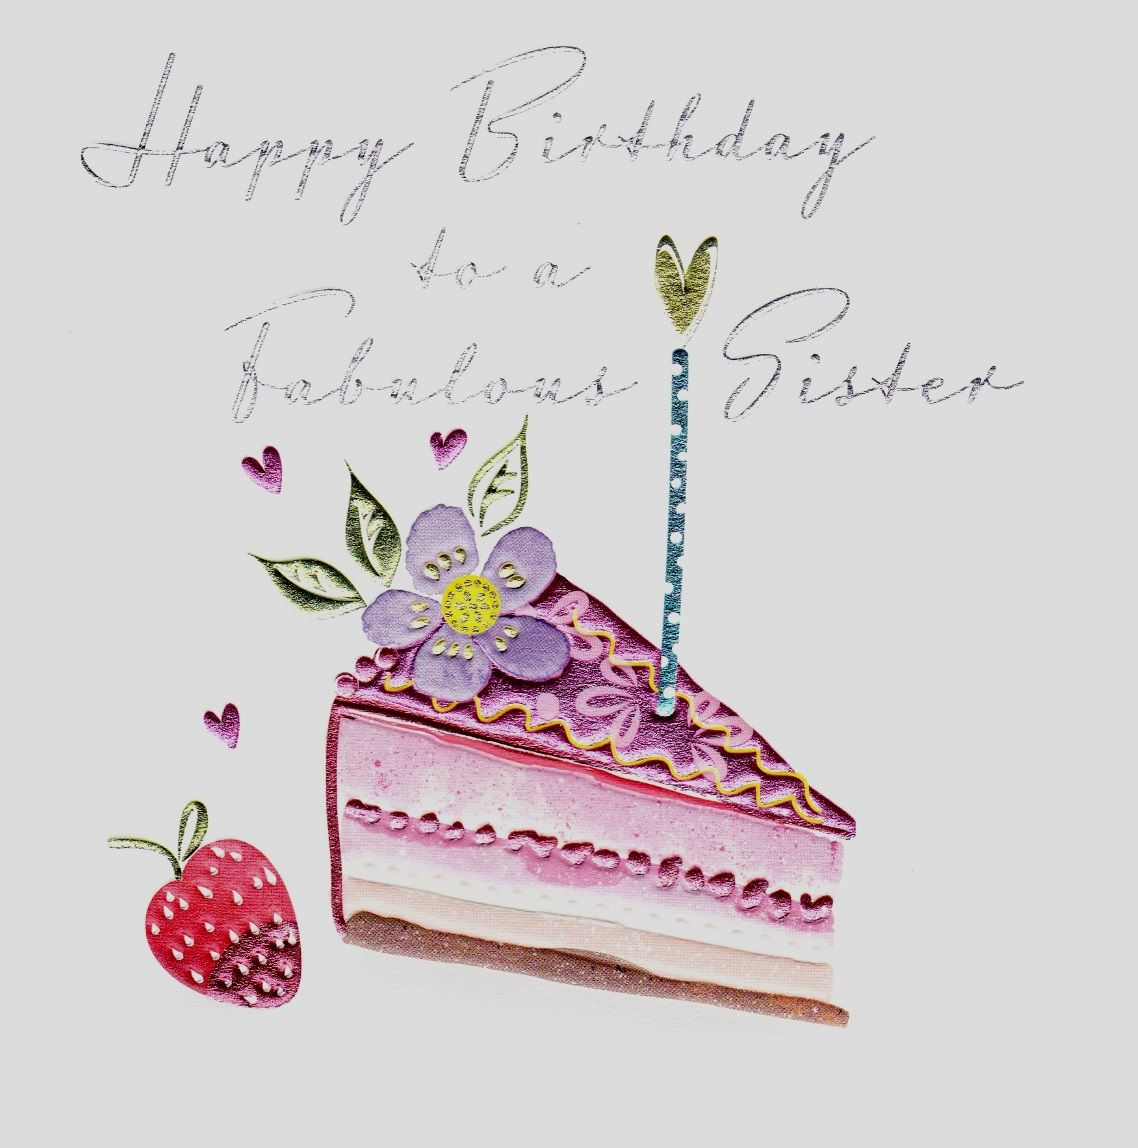 Fabulous Sister Slice Of Birthday Cake Card